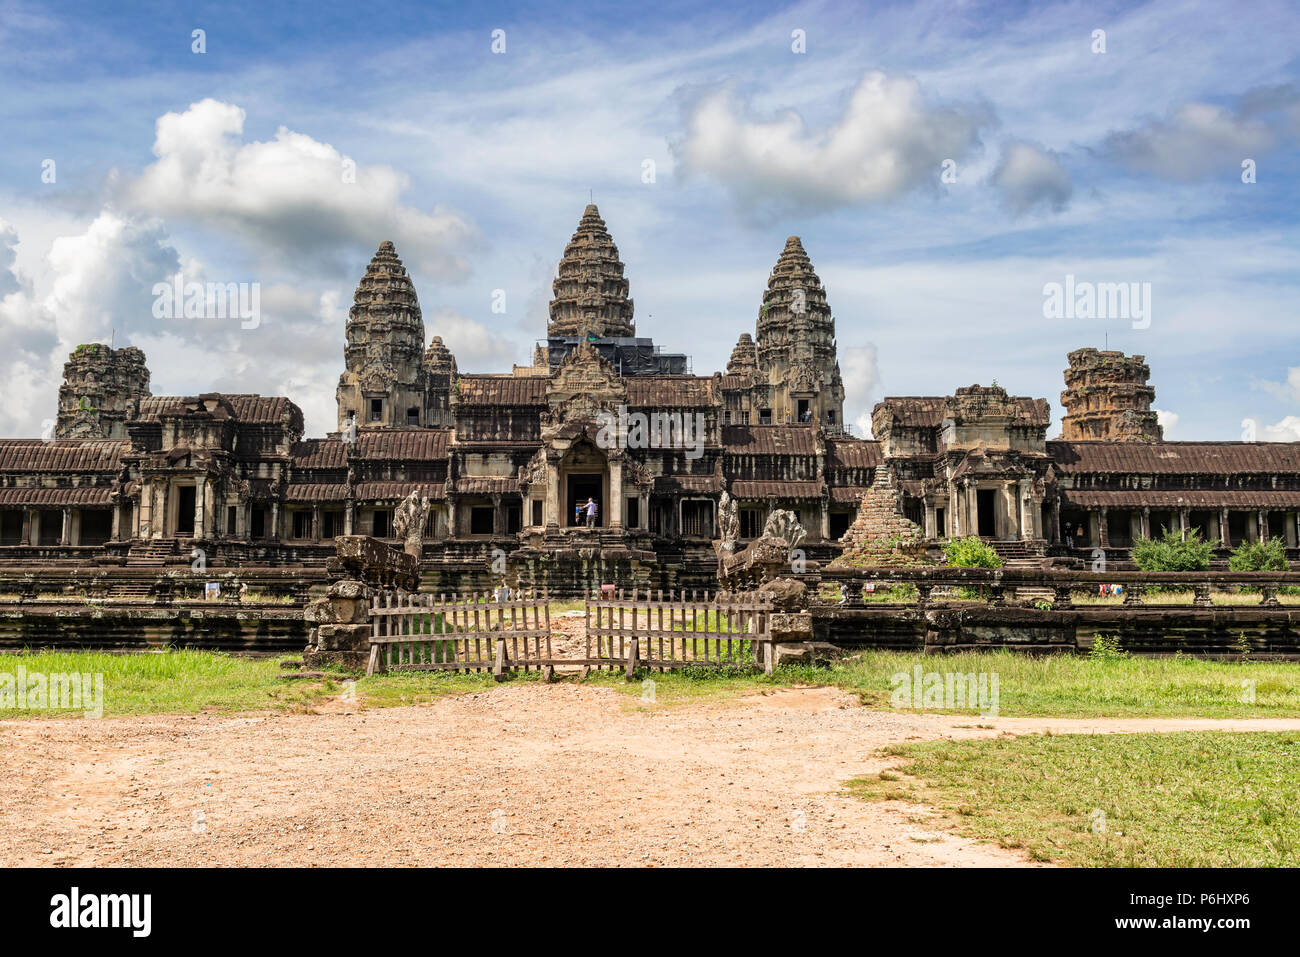 Angkor Wat, Cambodia - November 17, 2017: Ta Kou entrance to Angkor Wat temple complex in Cambodia. It is the largest religious complex in the world a - Stock Image